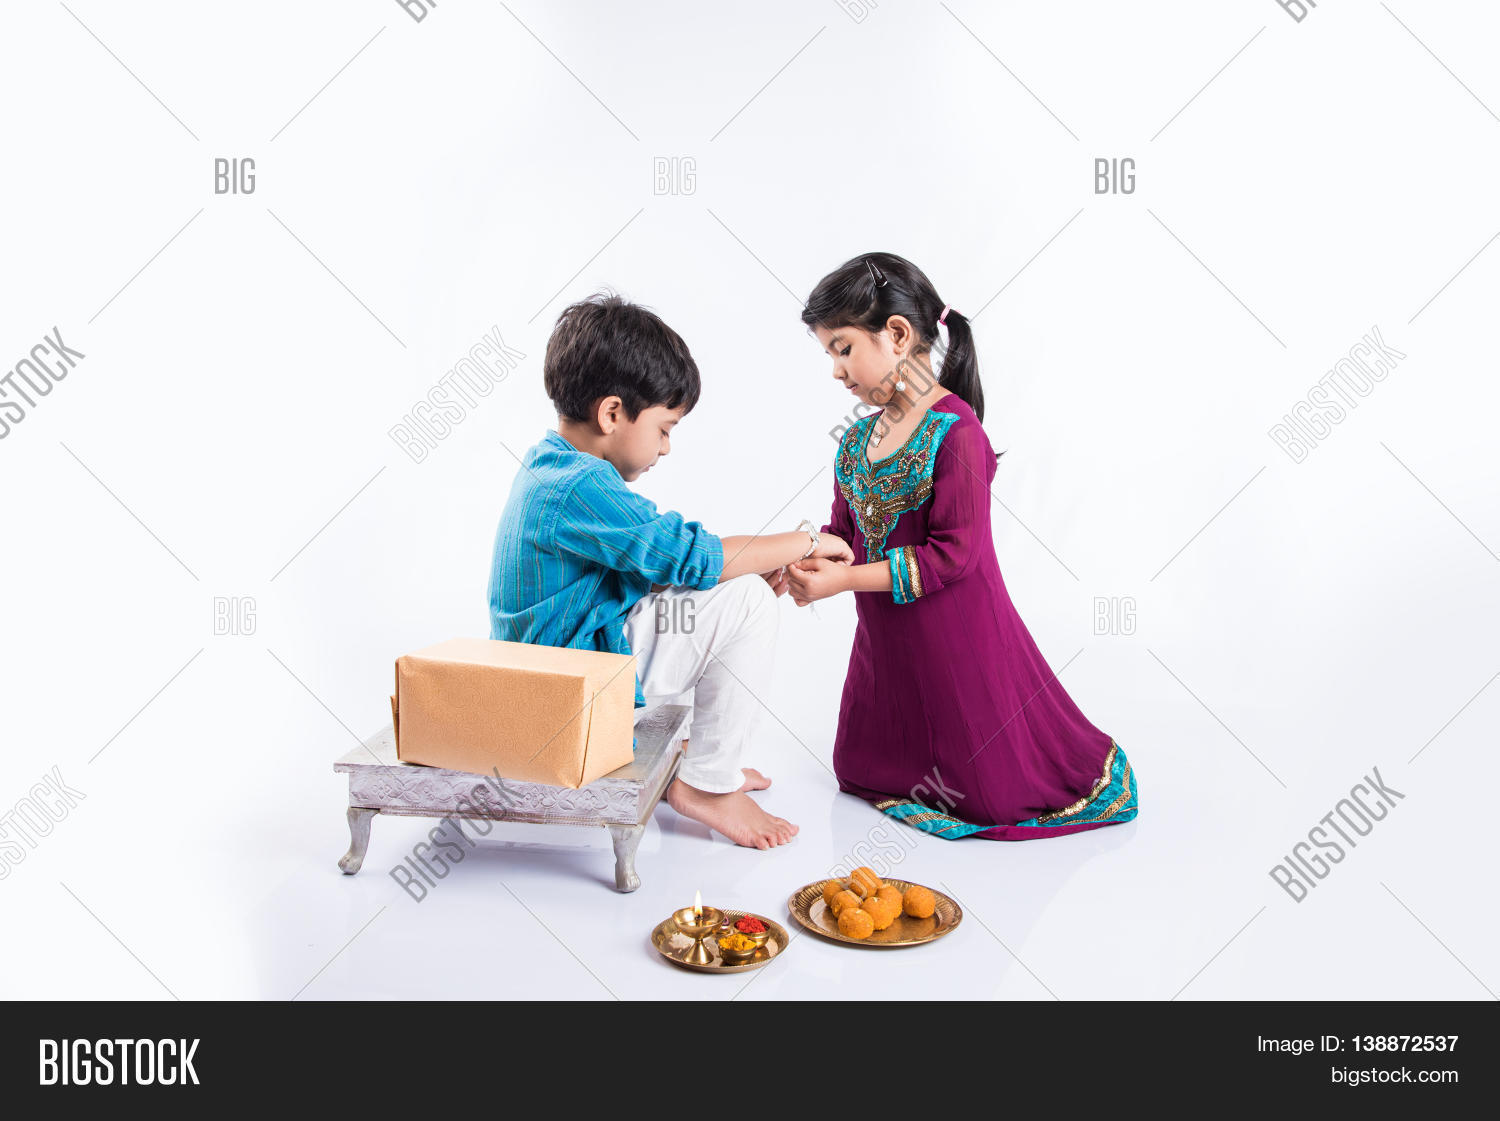 Cute Indian Sister Image Photo Free Trial Bigstock